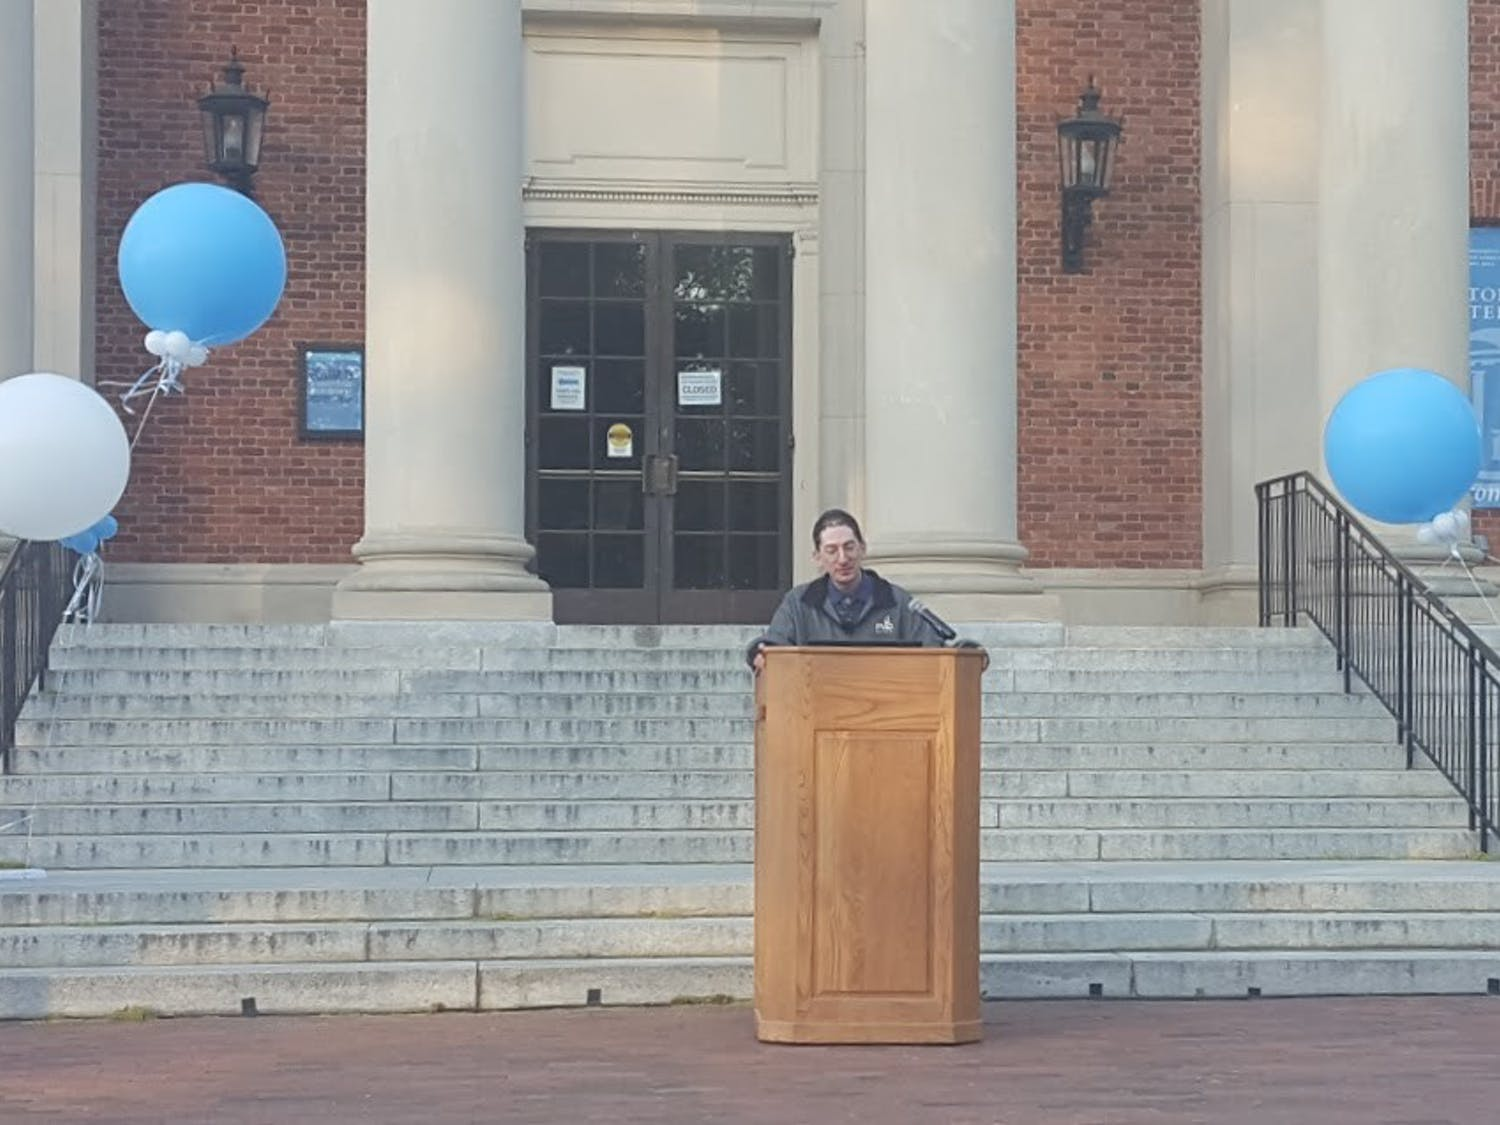 UNC Astronomy and Physics Professor Dan Reichart delivered the lecture on the steps of Morehead Planetarium.